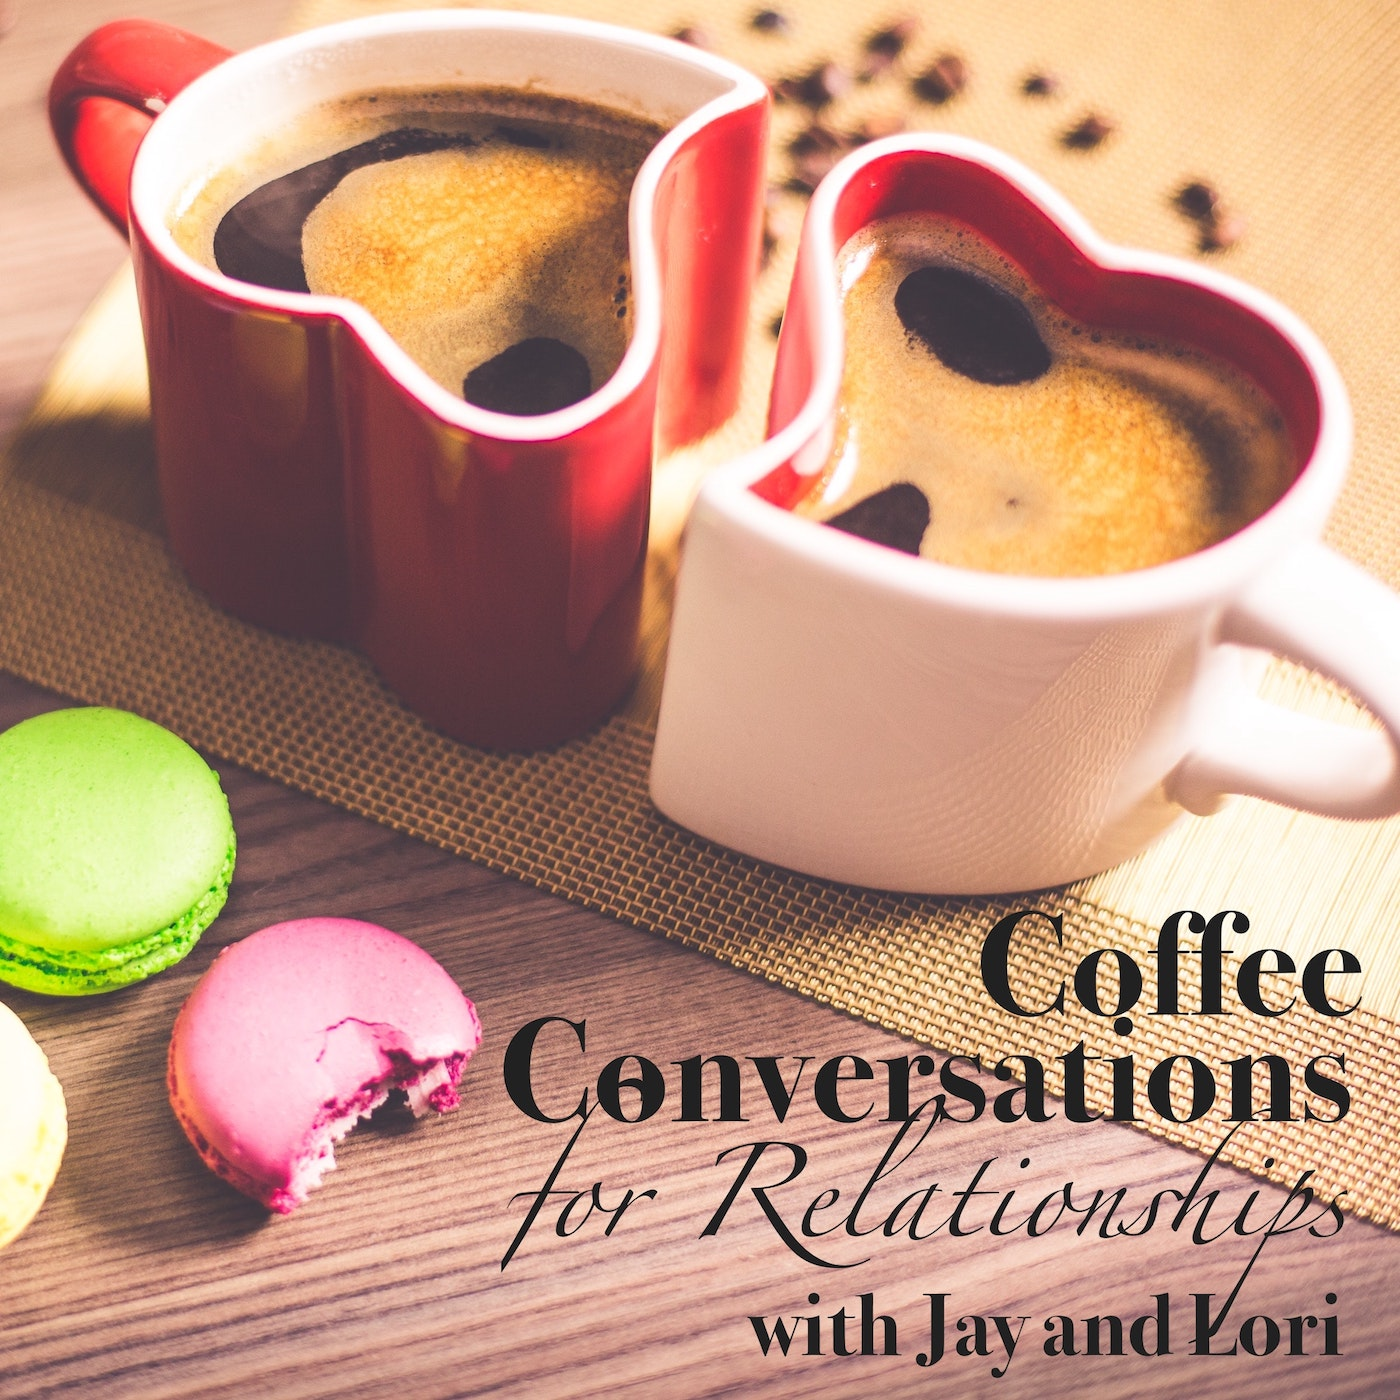 Coffee Conversations for Relationships